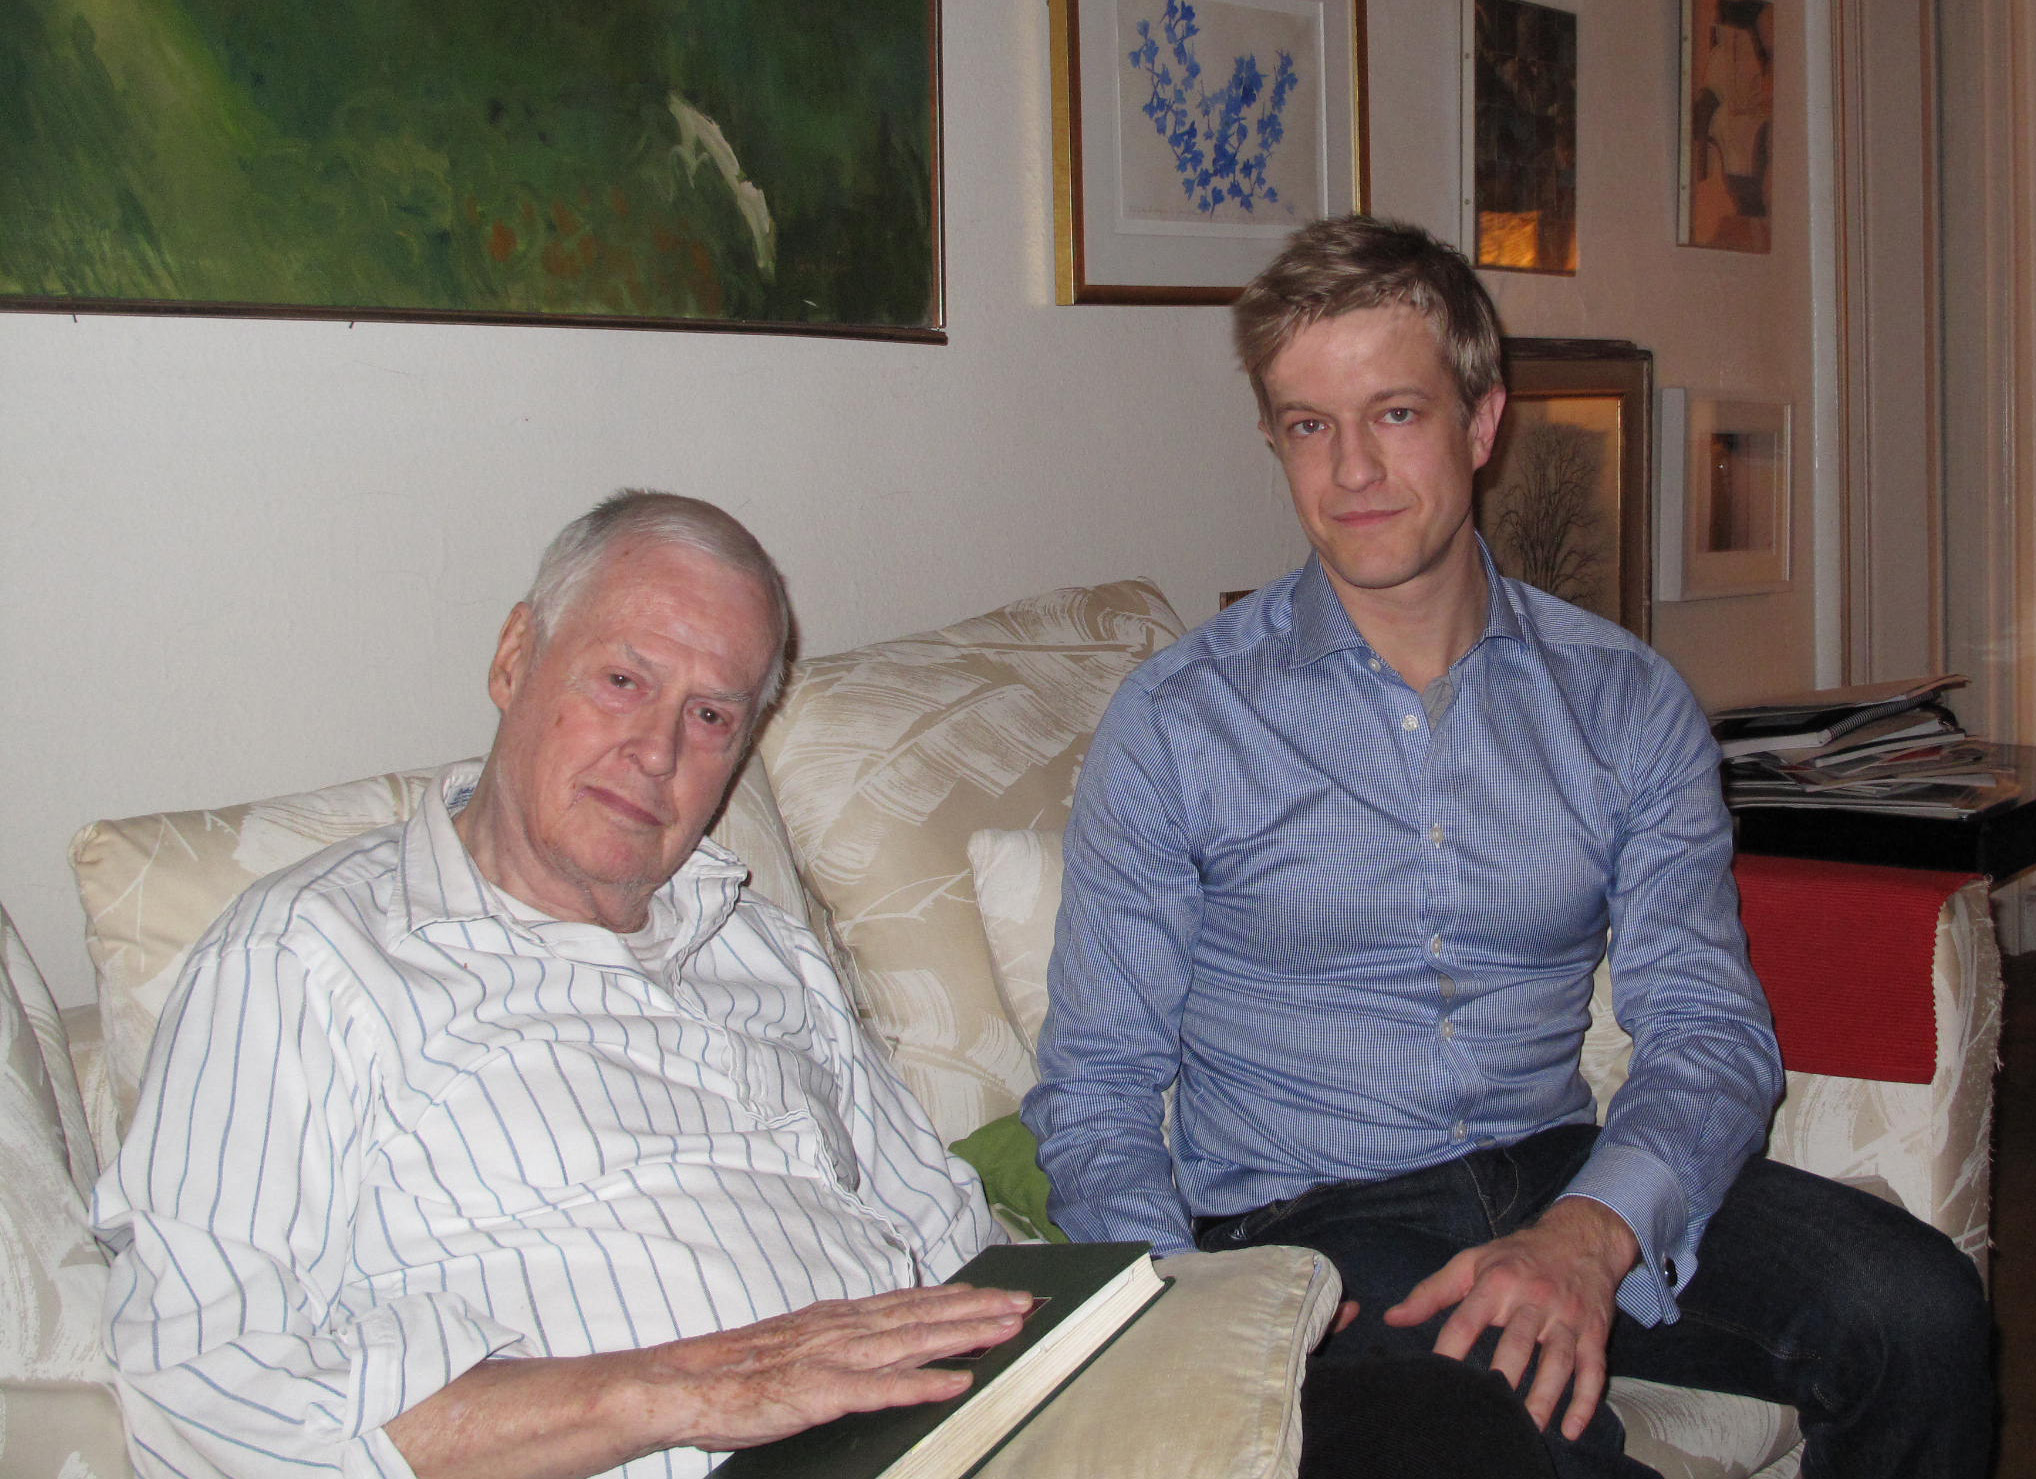 At composer Ned Rorem's apartment in New York City.